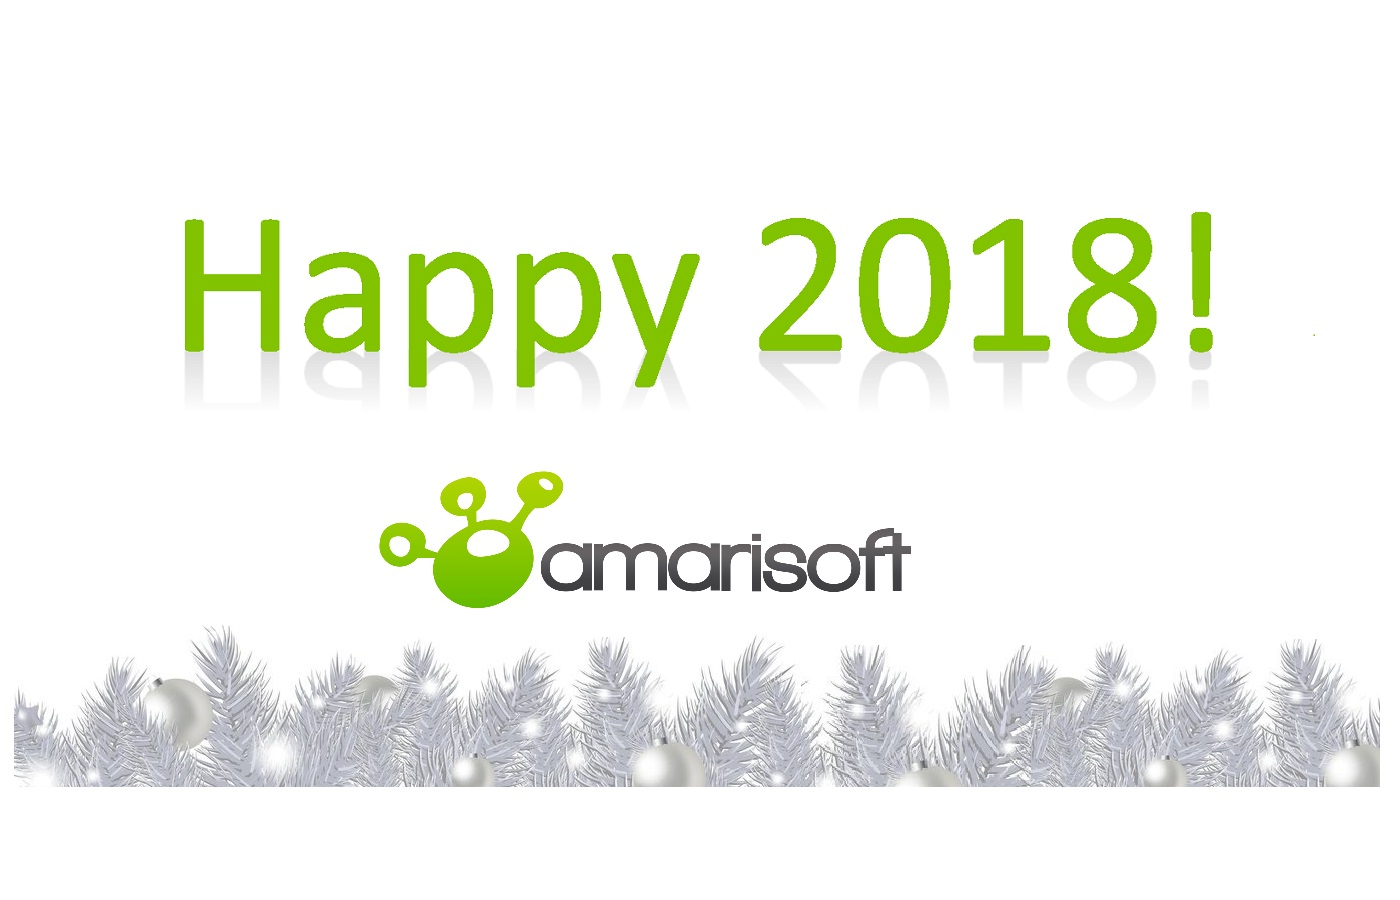 All the best for 2018!